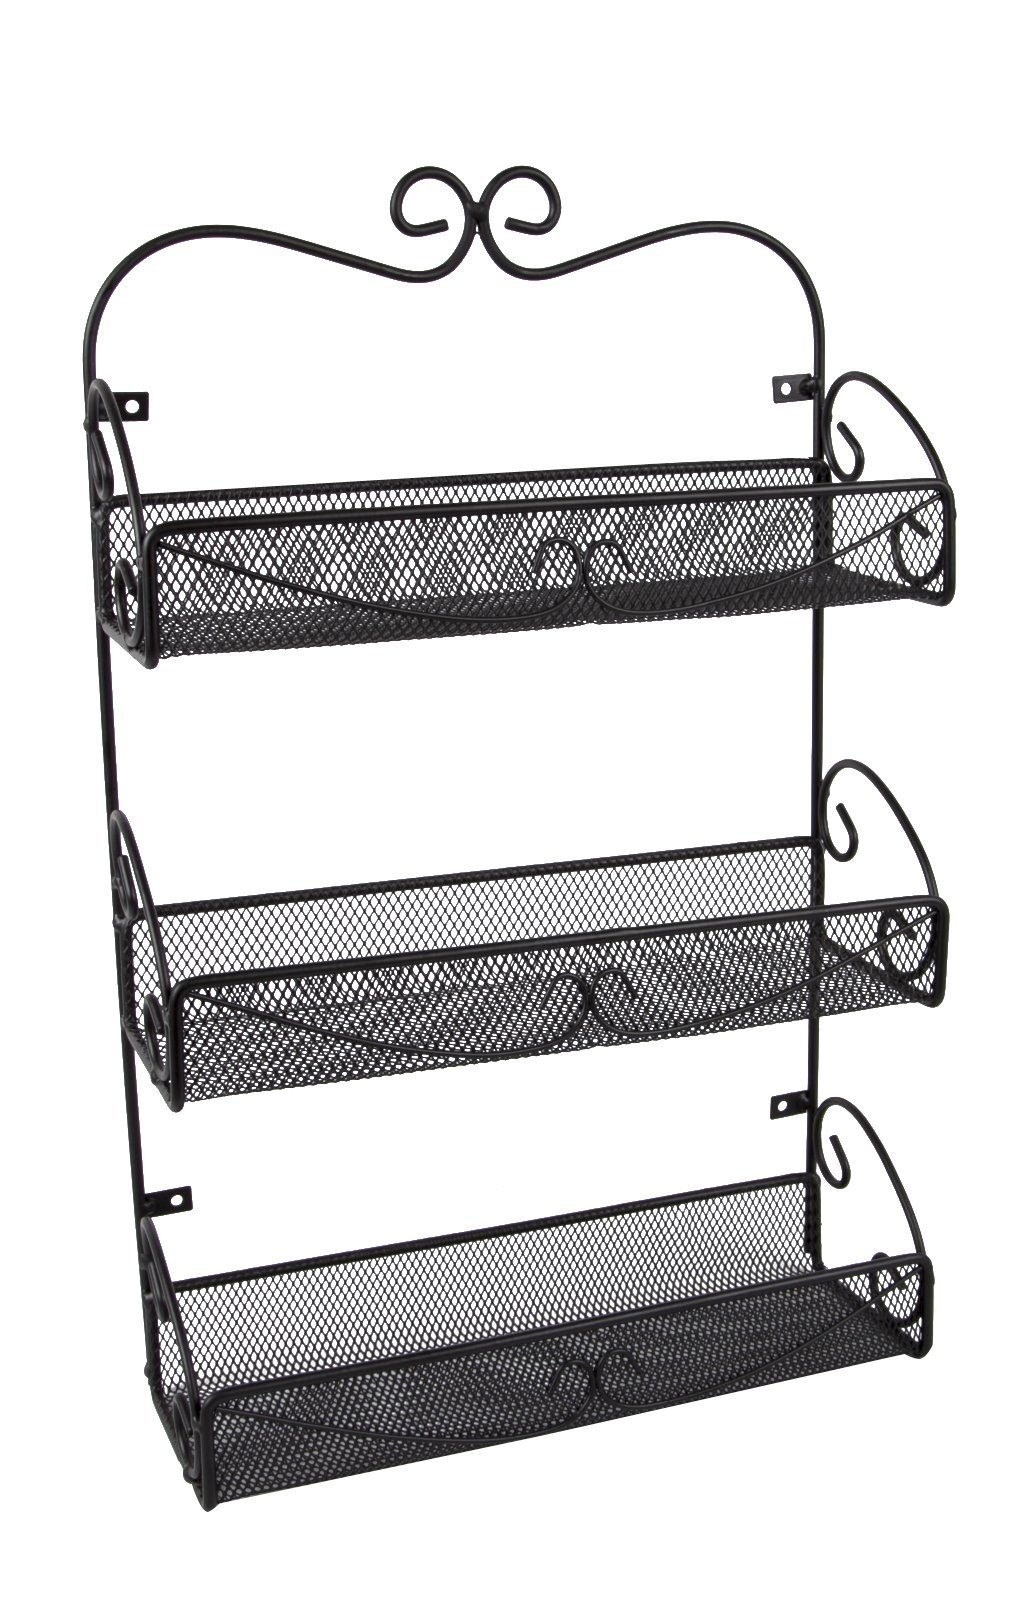 JMiles UH-SR245 3-Shelf Wall-Mounted Spice Rack - Hanging Shelf Rack for Kitchens, Bathrooms, and More - Storage Solution for Spices, Cosmetics, Soaps, and More